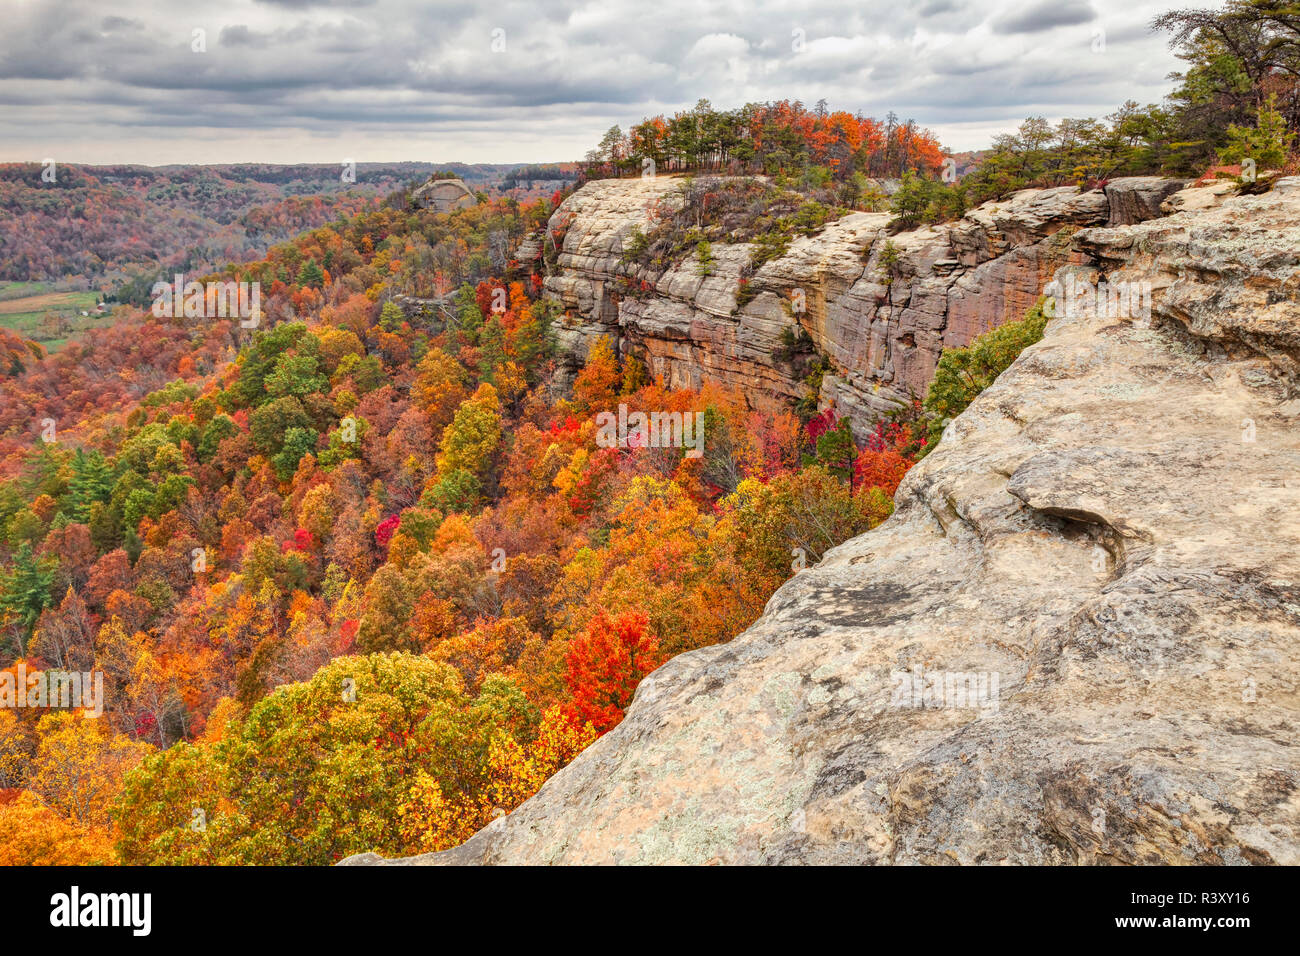 Fall colors, Red River Gorge, Kentucky Stock Photo